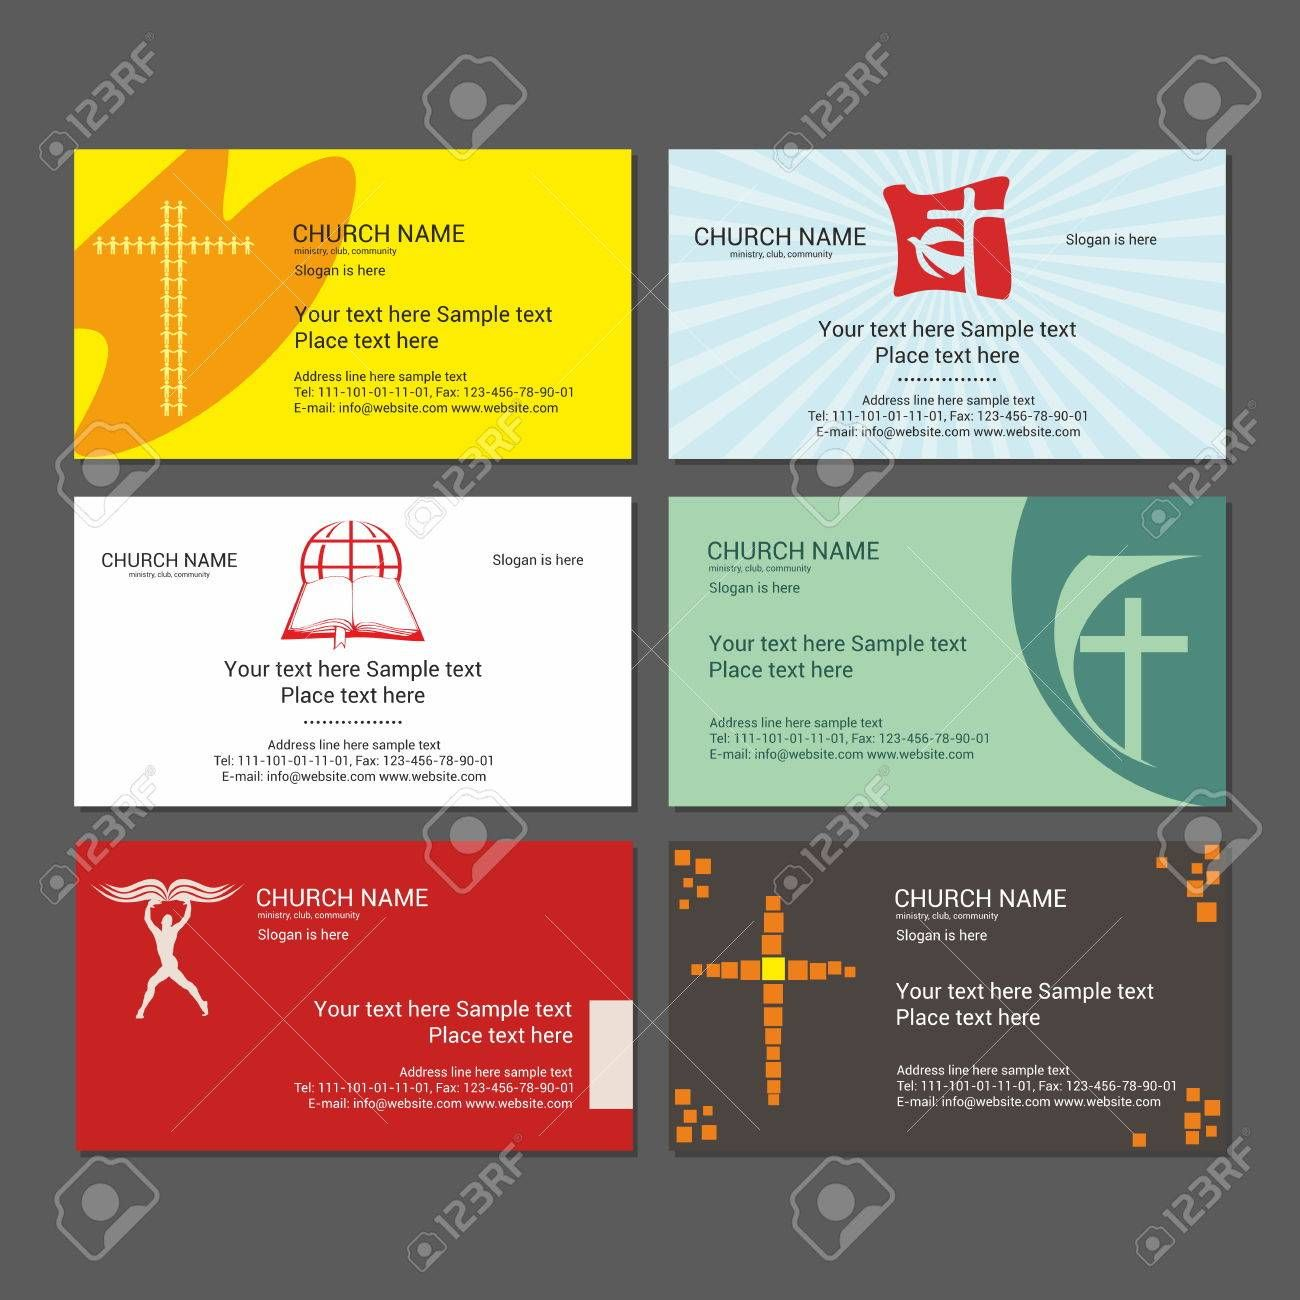 The Mesmerizing Set Christian Business Cards For The Church The Ministry The Withi Free Business Card Templates Business Card Template Card Templates Free